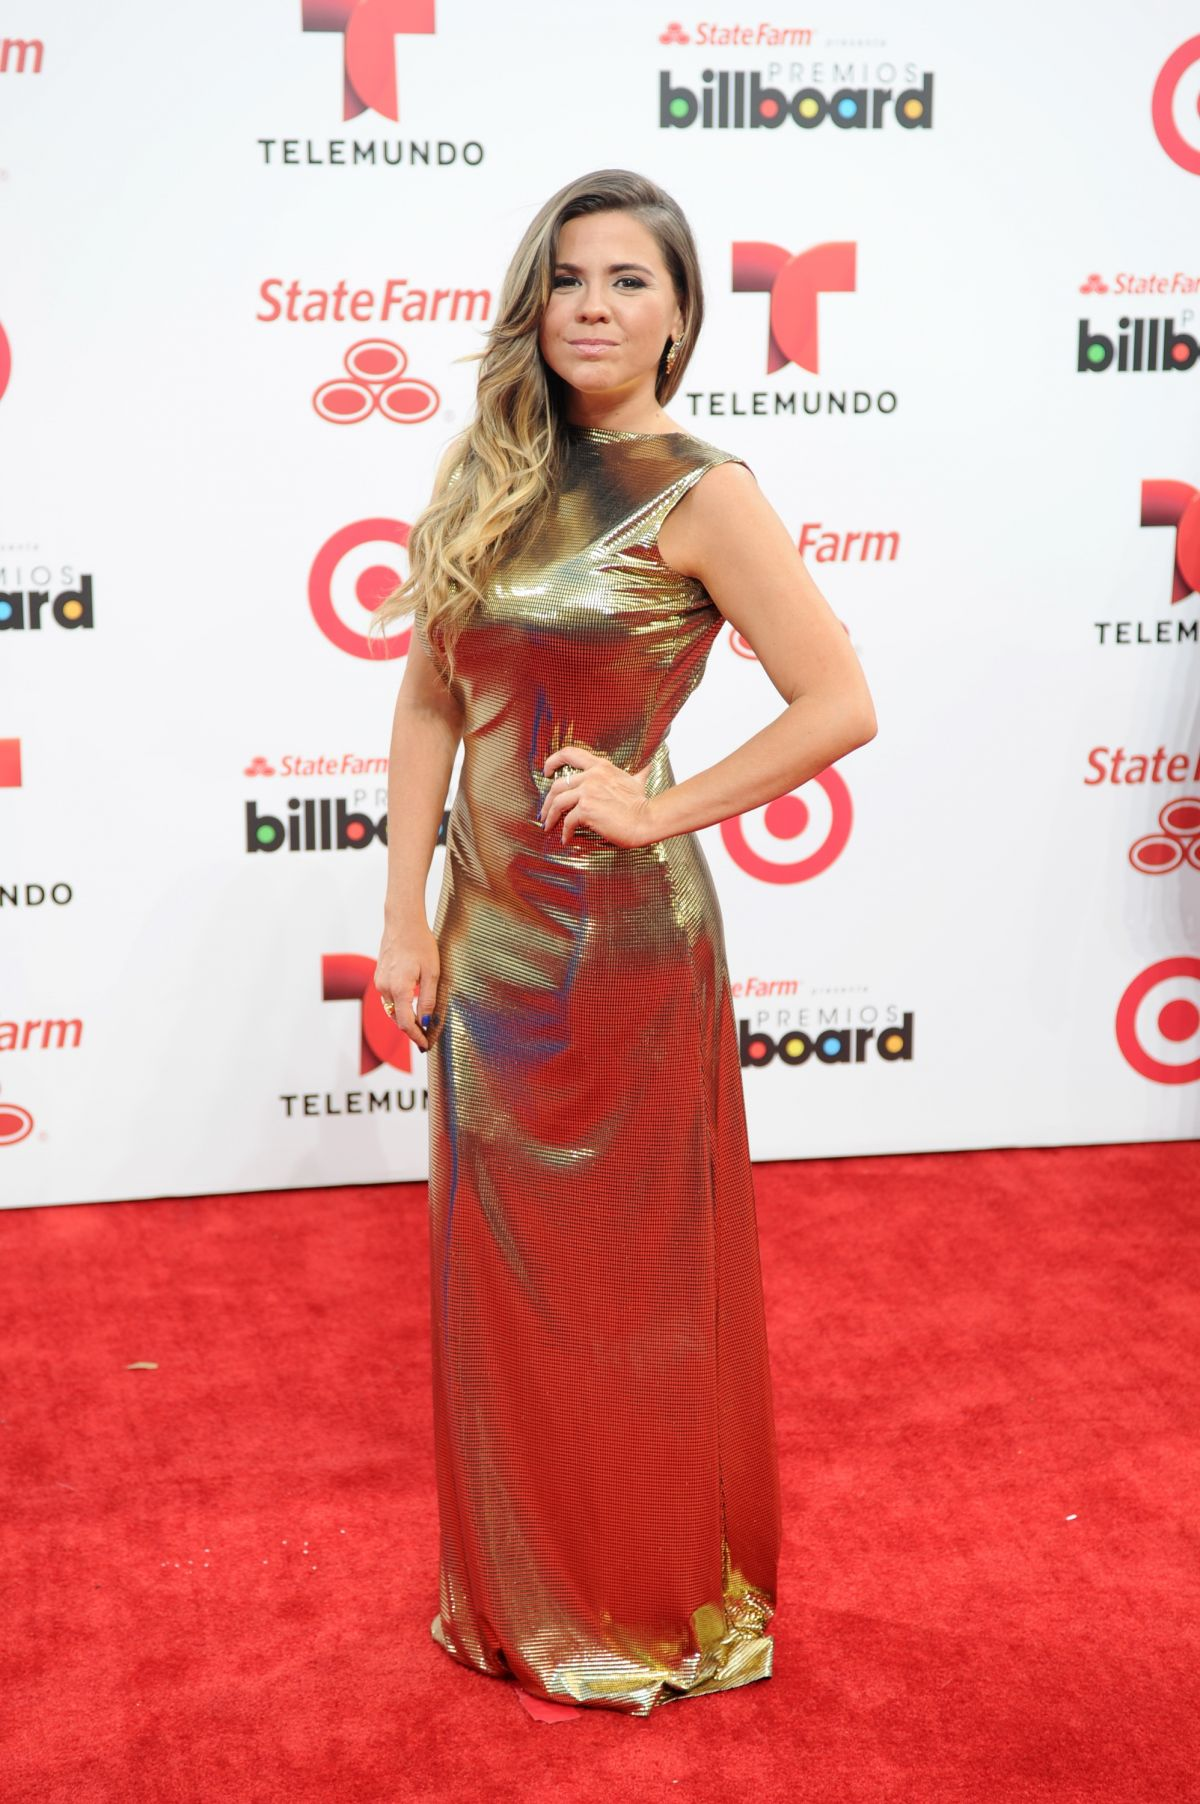 PAOLA PEDROZA at 2014 Billboard Latin Music Awards in Miami